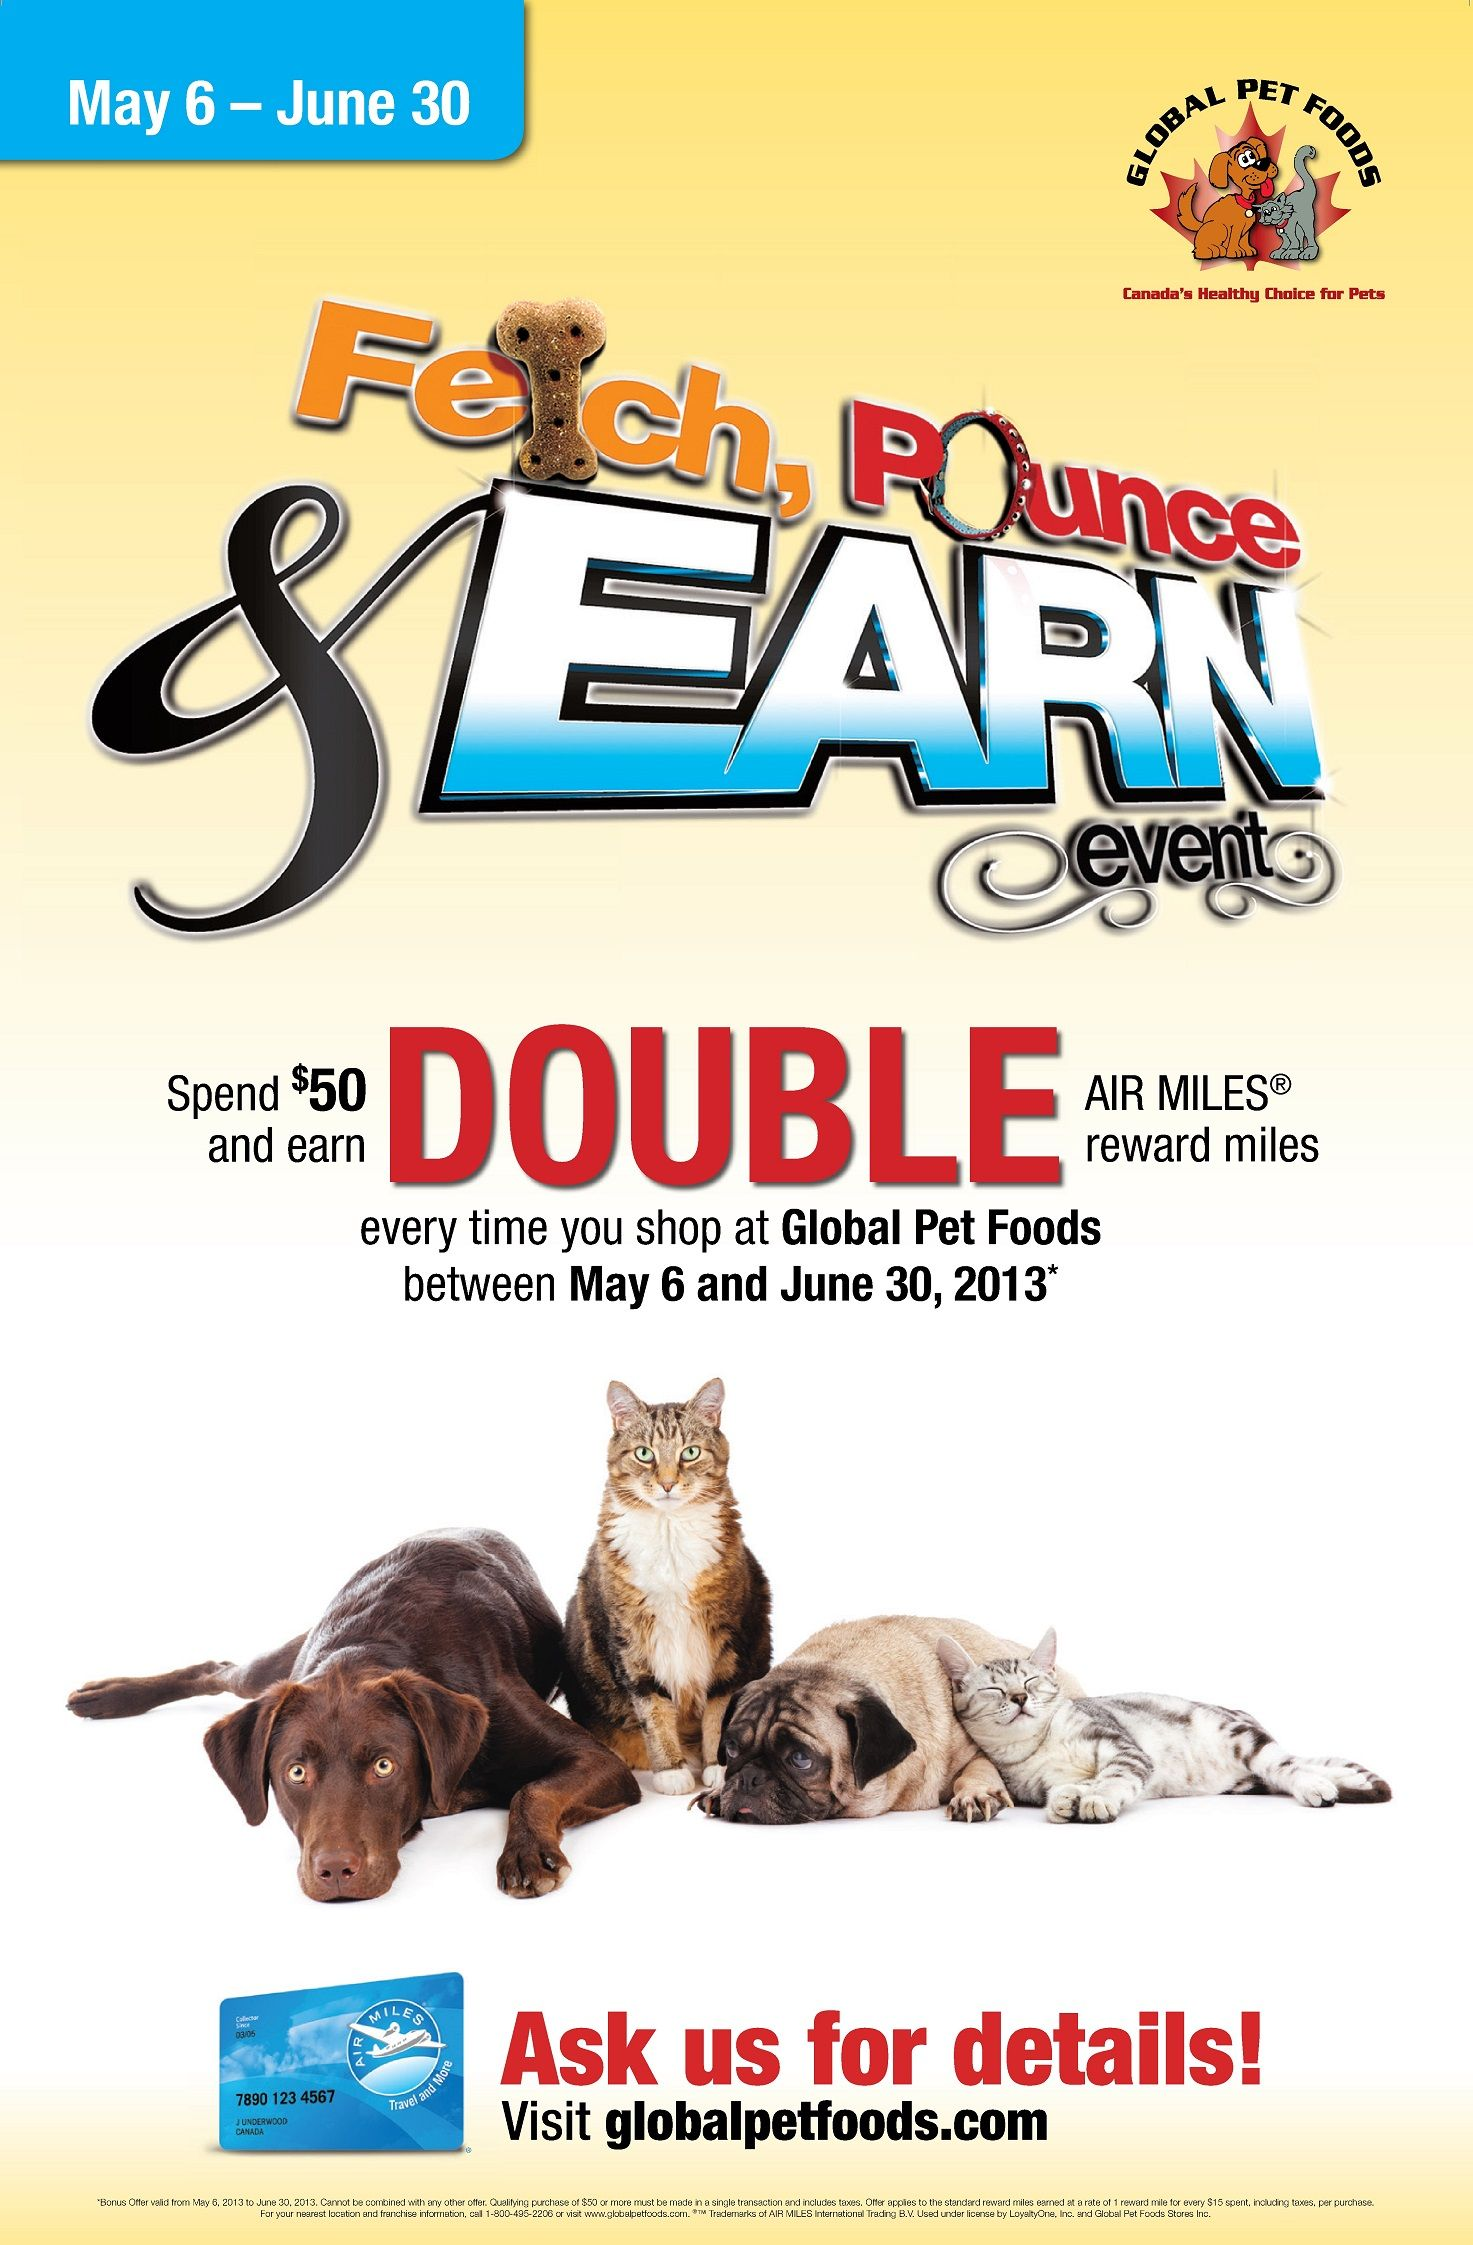 Spend 50 in one transaction in any Global Pet Foods store